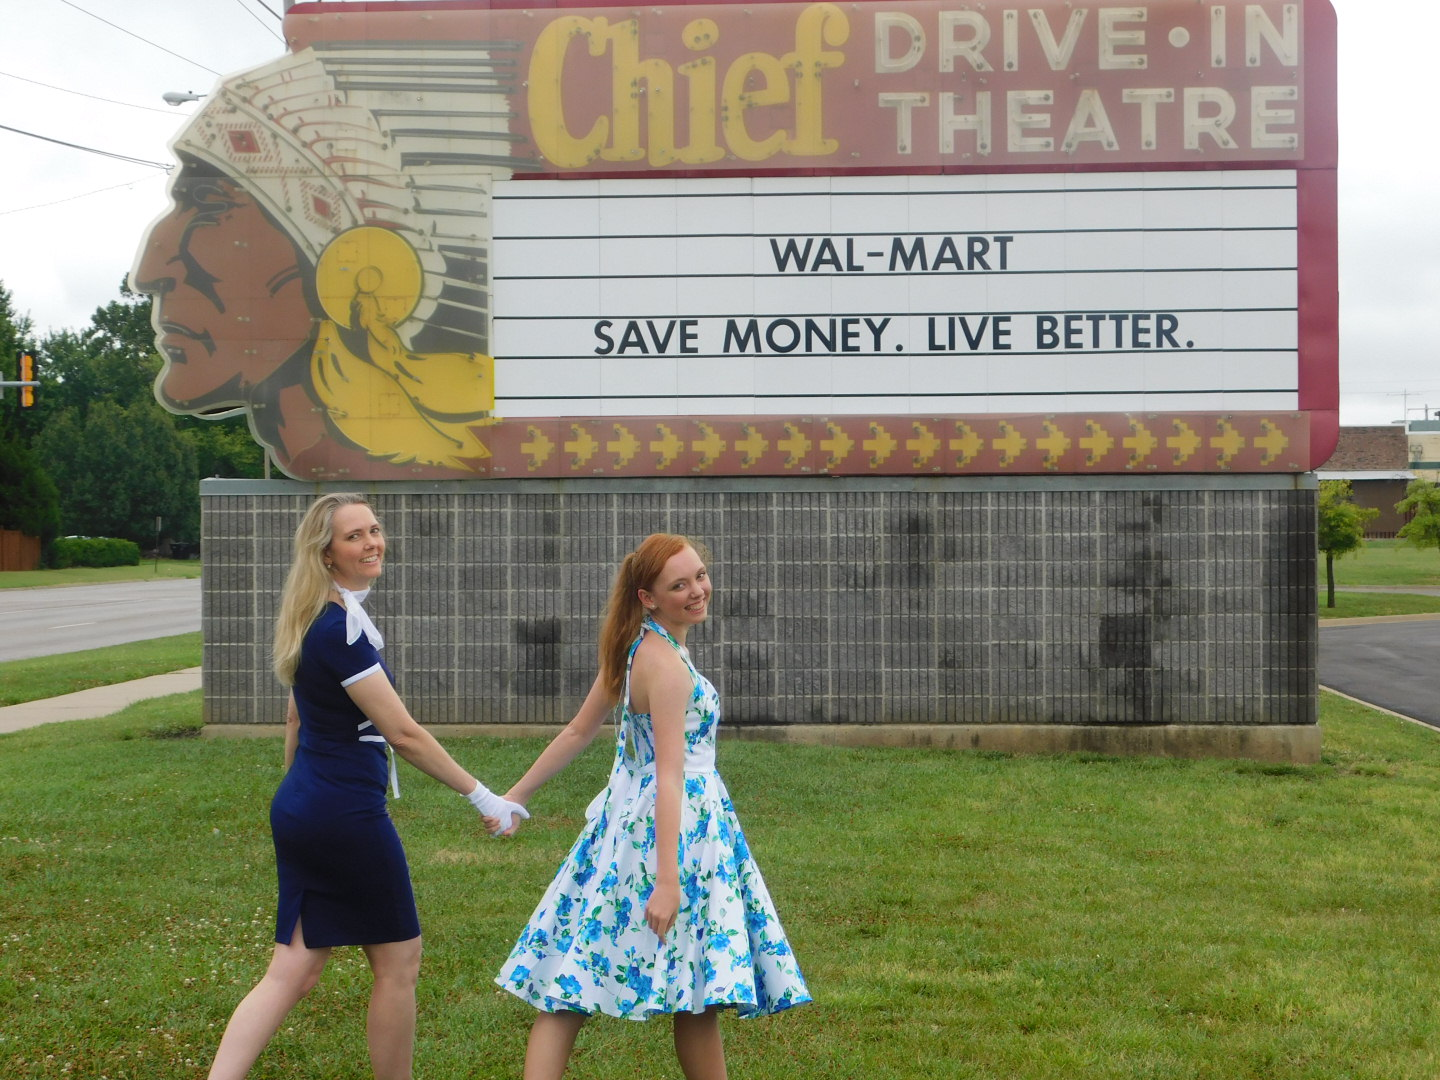 Chief Drive In sign, 37th Street. Kudos to Wal-Mart for not only saving but preserving the glorious piece of Topeka architecture.